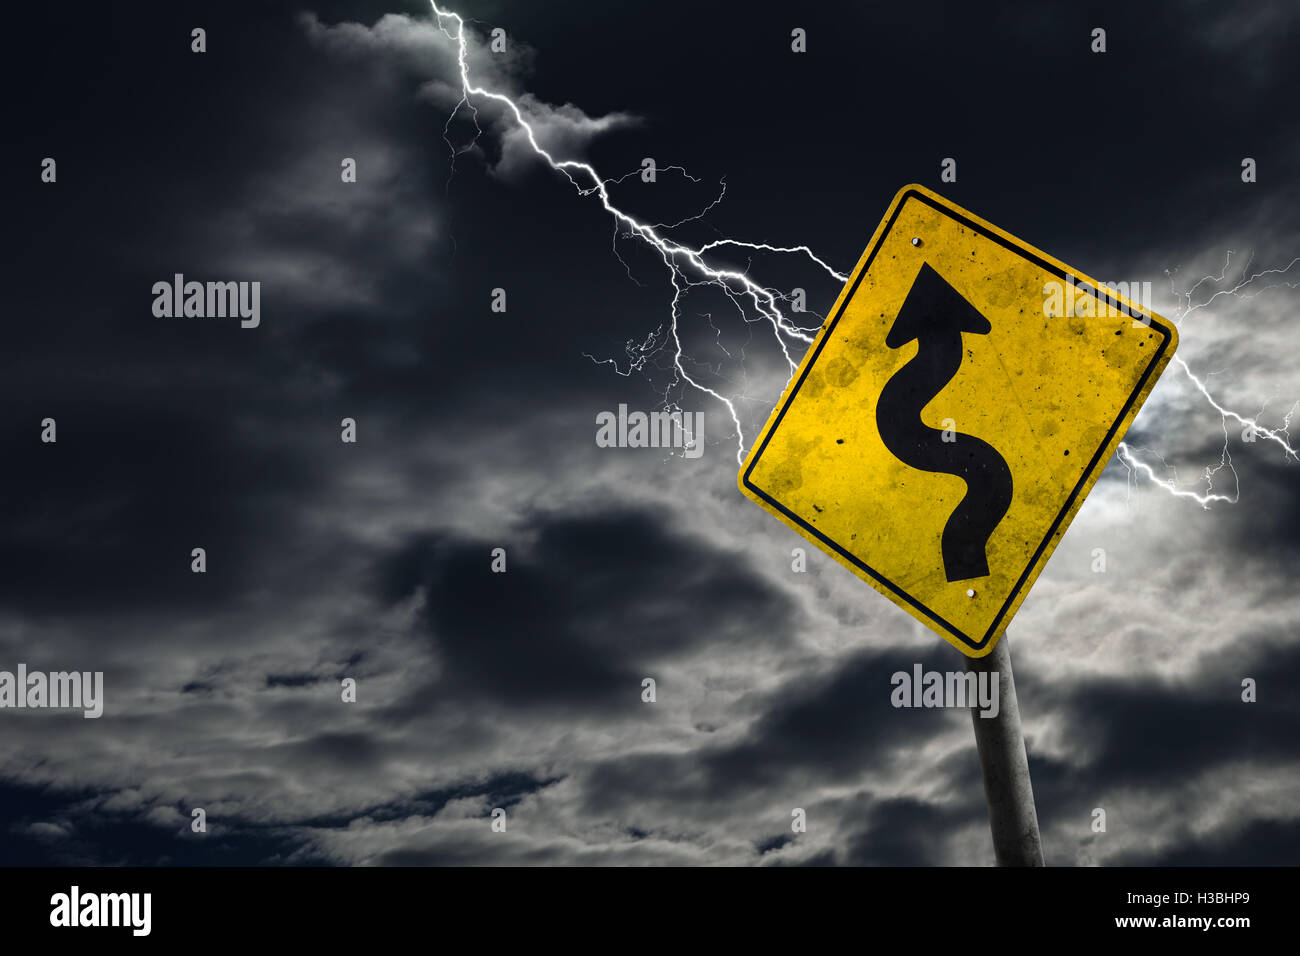 Winding road sign against a stormy background with lightning and copy space. Dirty and angled sign adds to the drama. - Stock Image